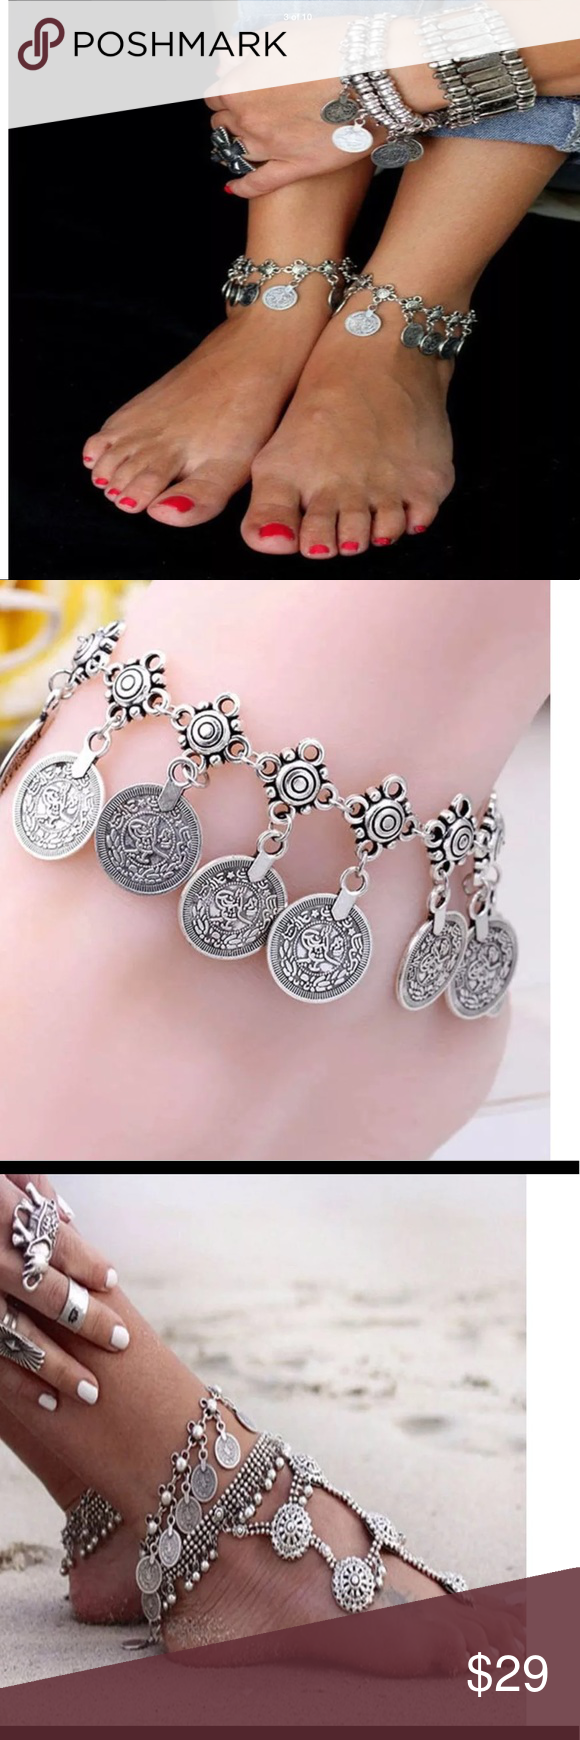 Just For The Beach Sexy Fashion Silver Coin Anklet Foot Jewelry Boutique Silver